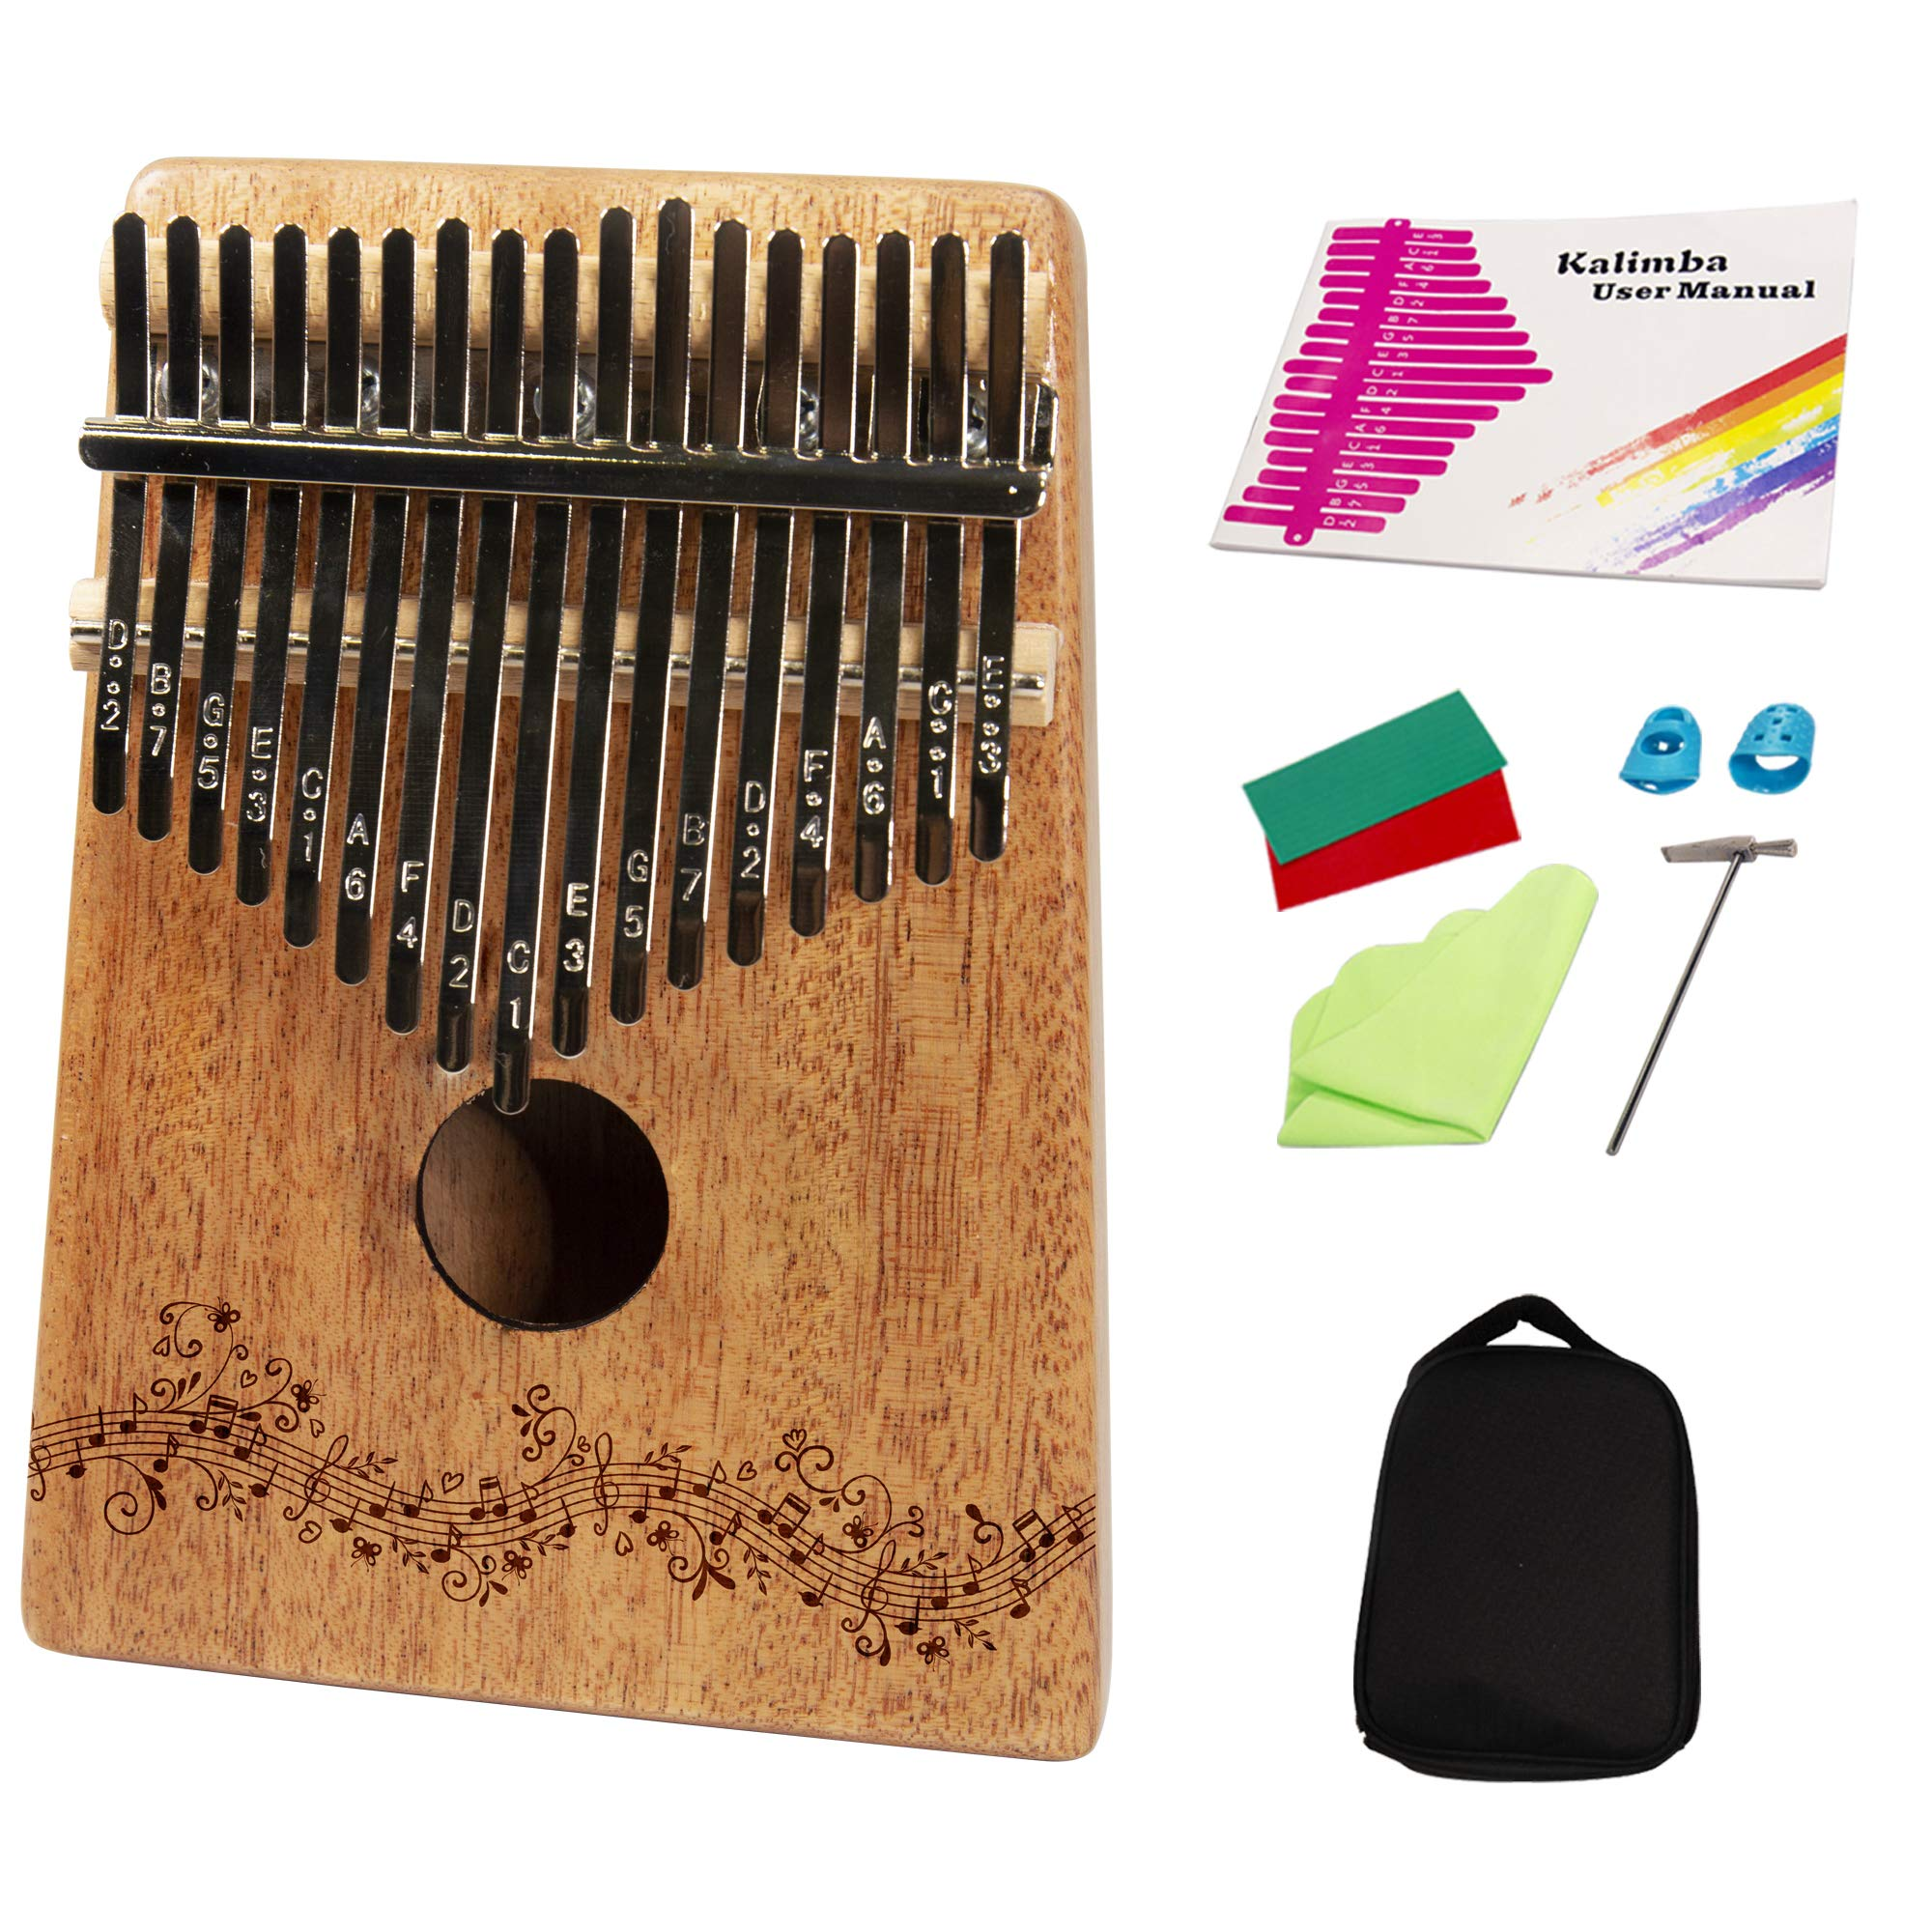 Kalimba Wooden Thumb Piano by Upside Products - 17 engraved key with protective case, beginners instruction book, tuning hammer, cleaning cloth, thumb protectors. Portable, easy learn relaxing gift